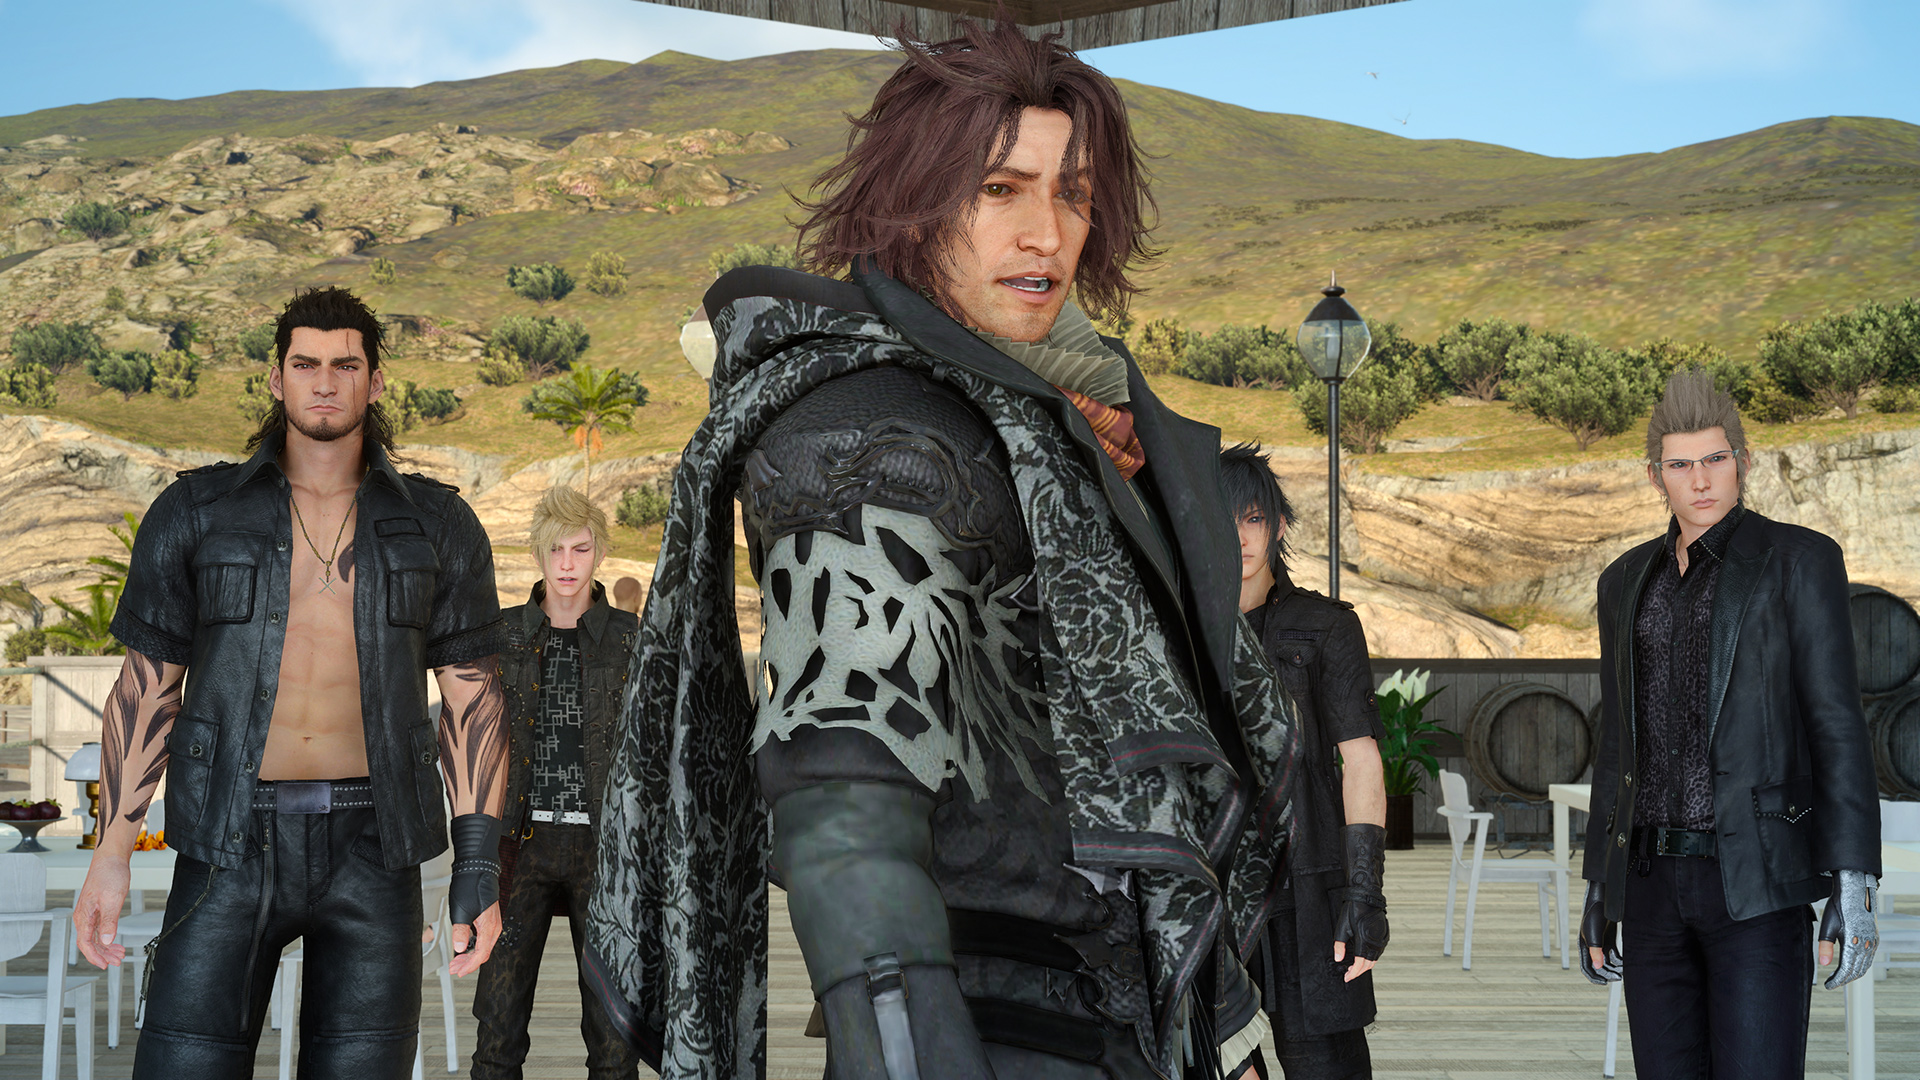 Final Fantasy XV DLC content cancelled as director leaves Square Enix - GameAxis